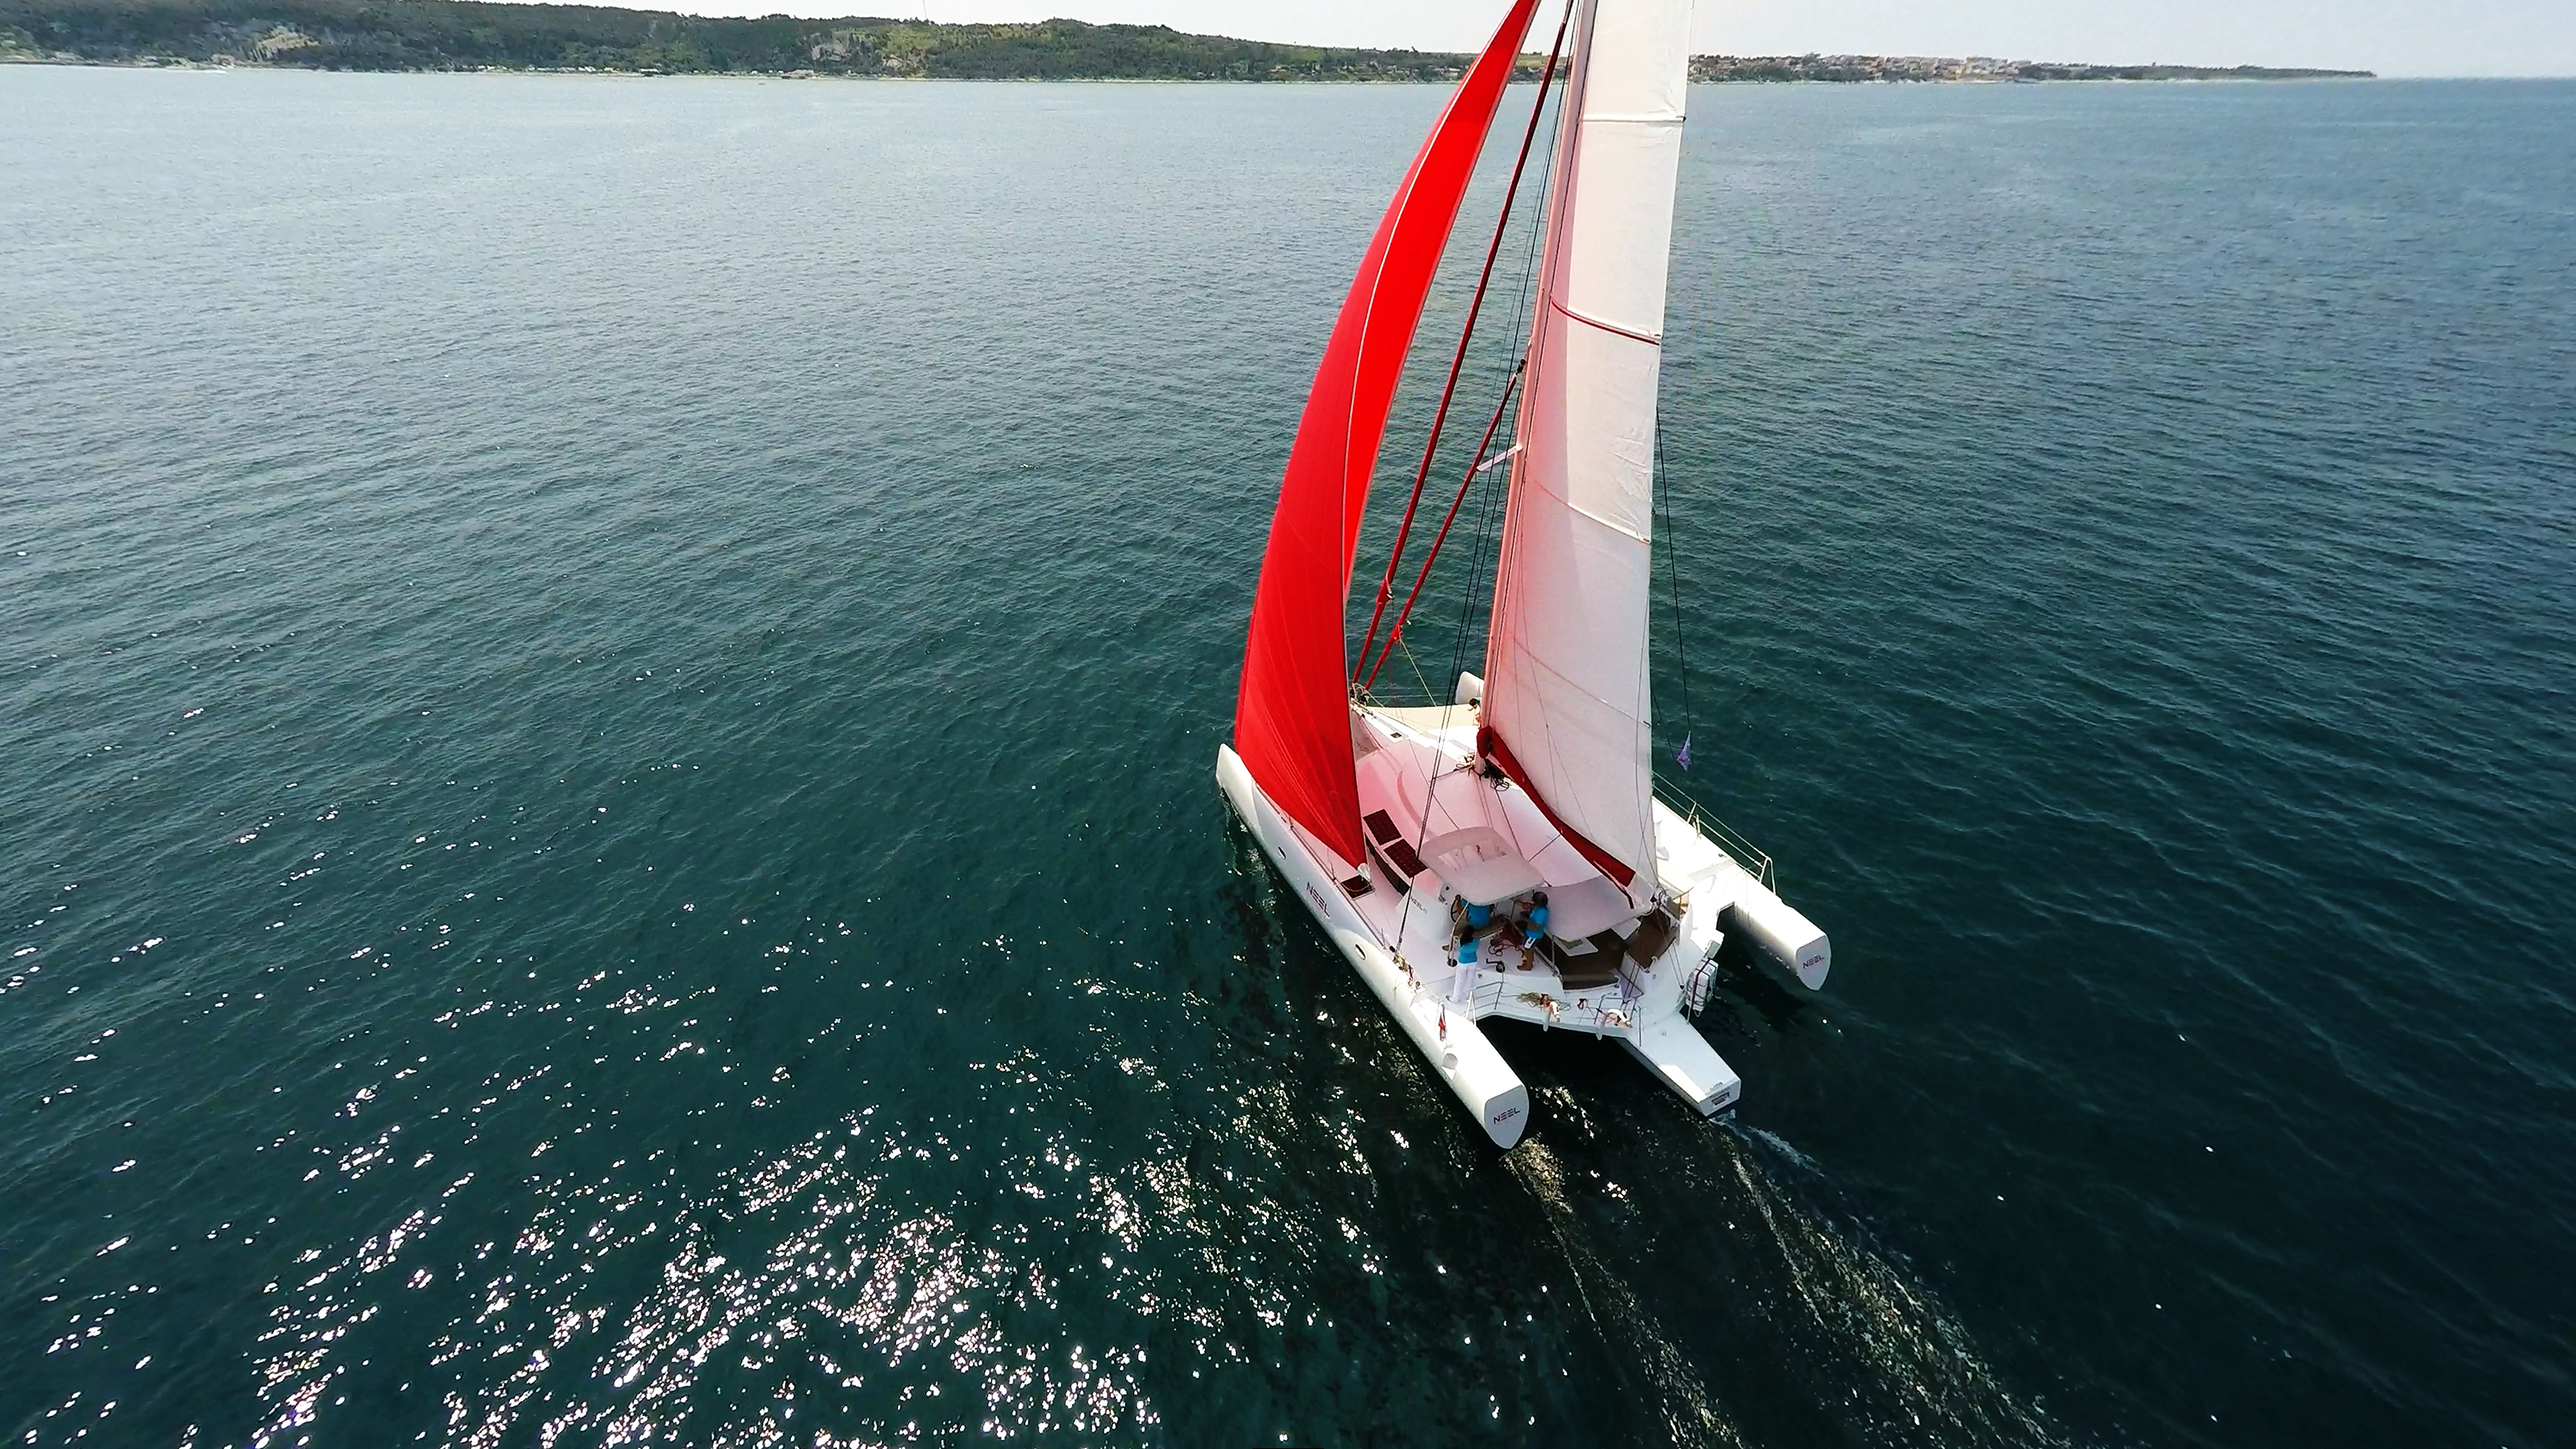 trimaran from above red gennaker crew in turquoise t-shirts sailing